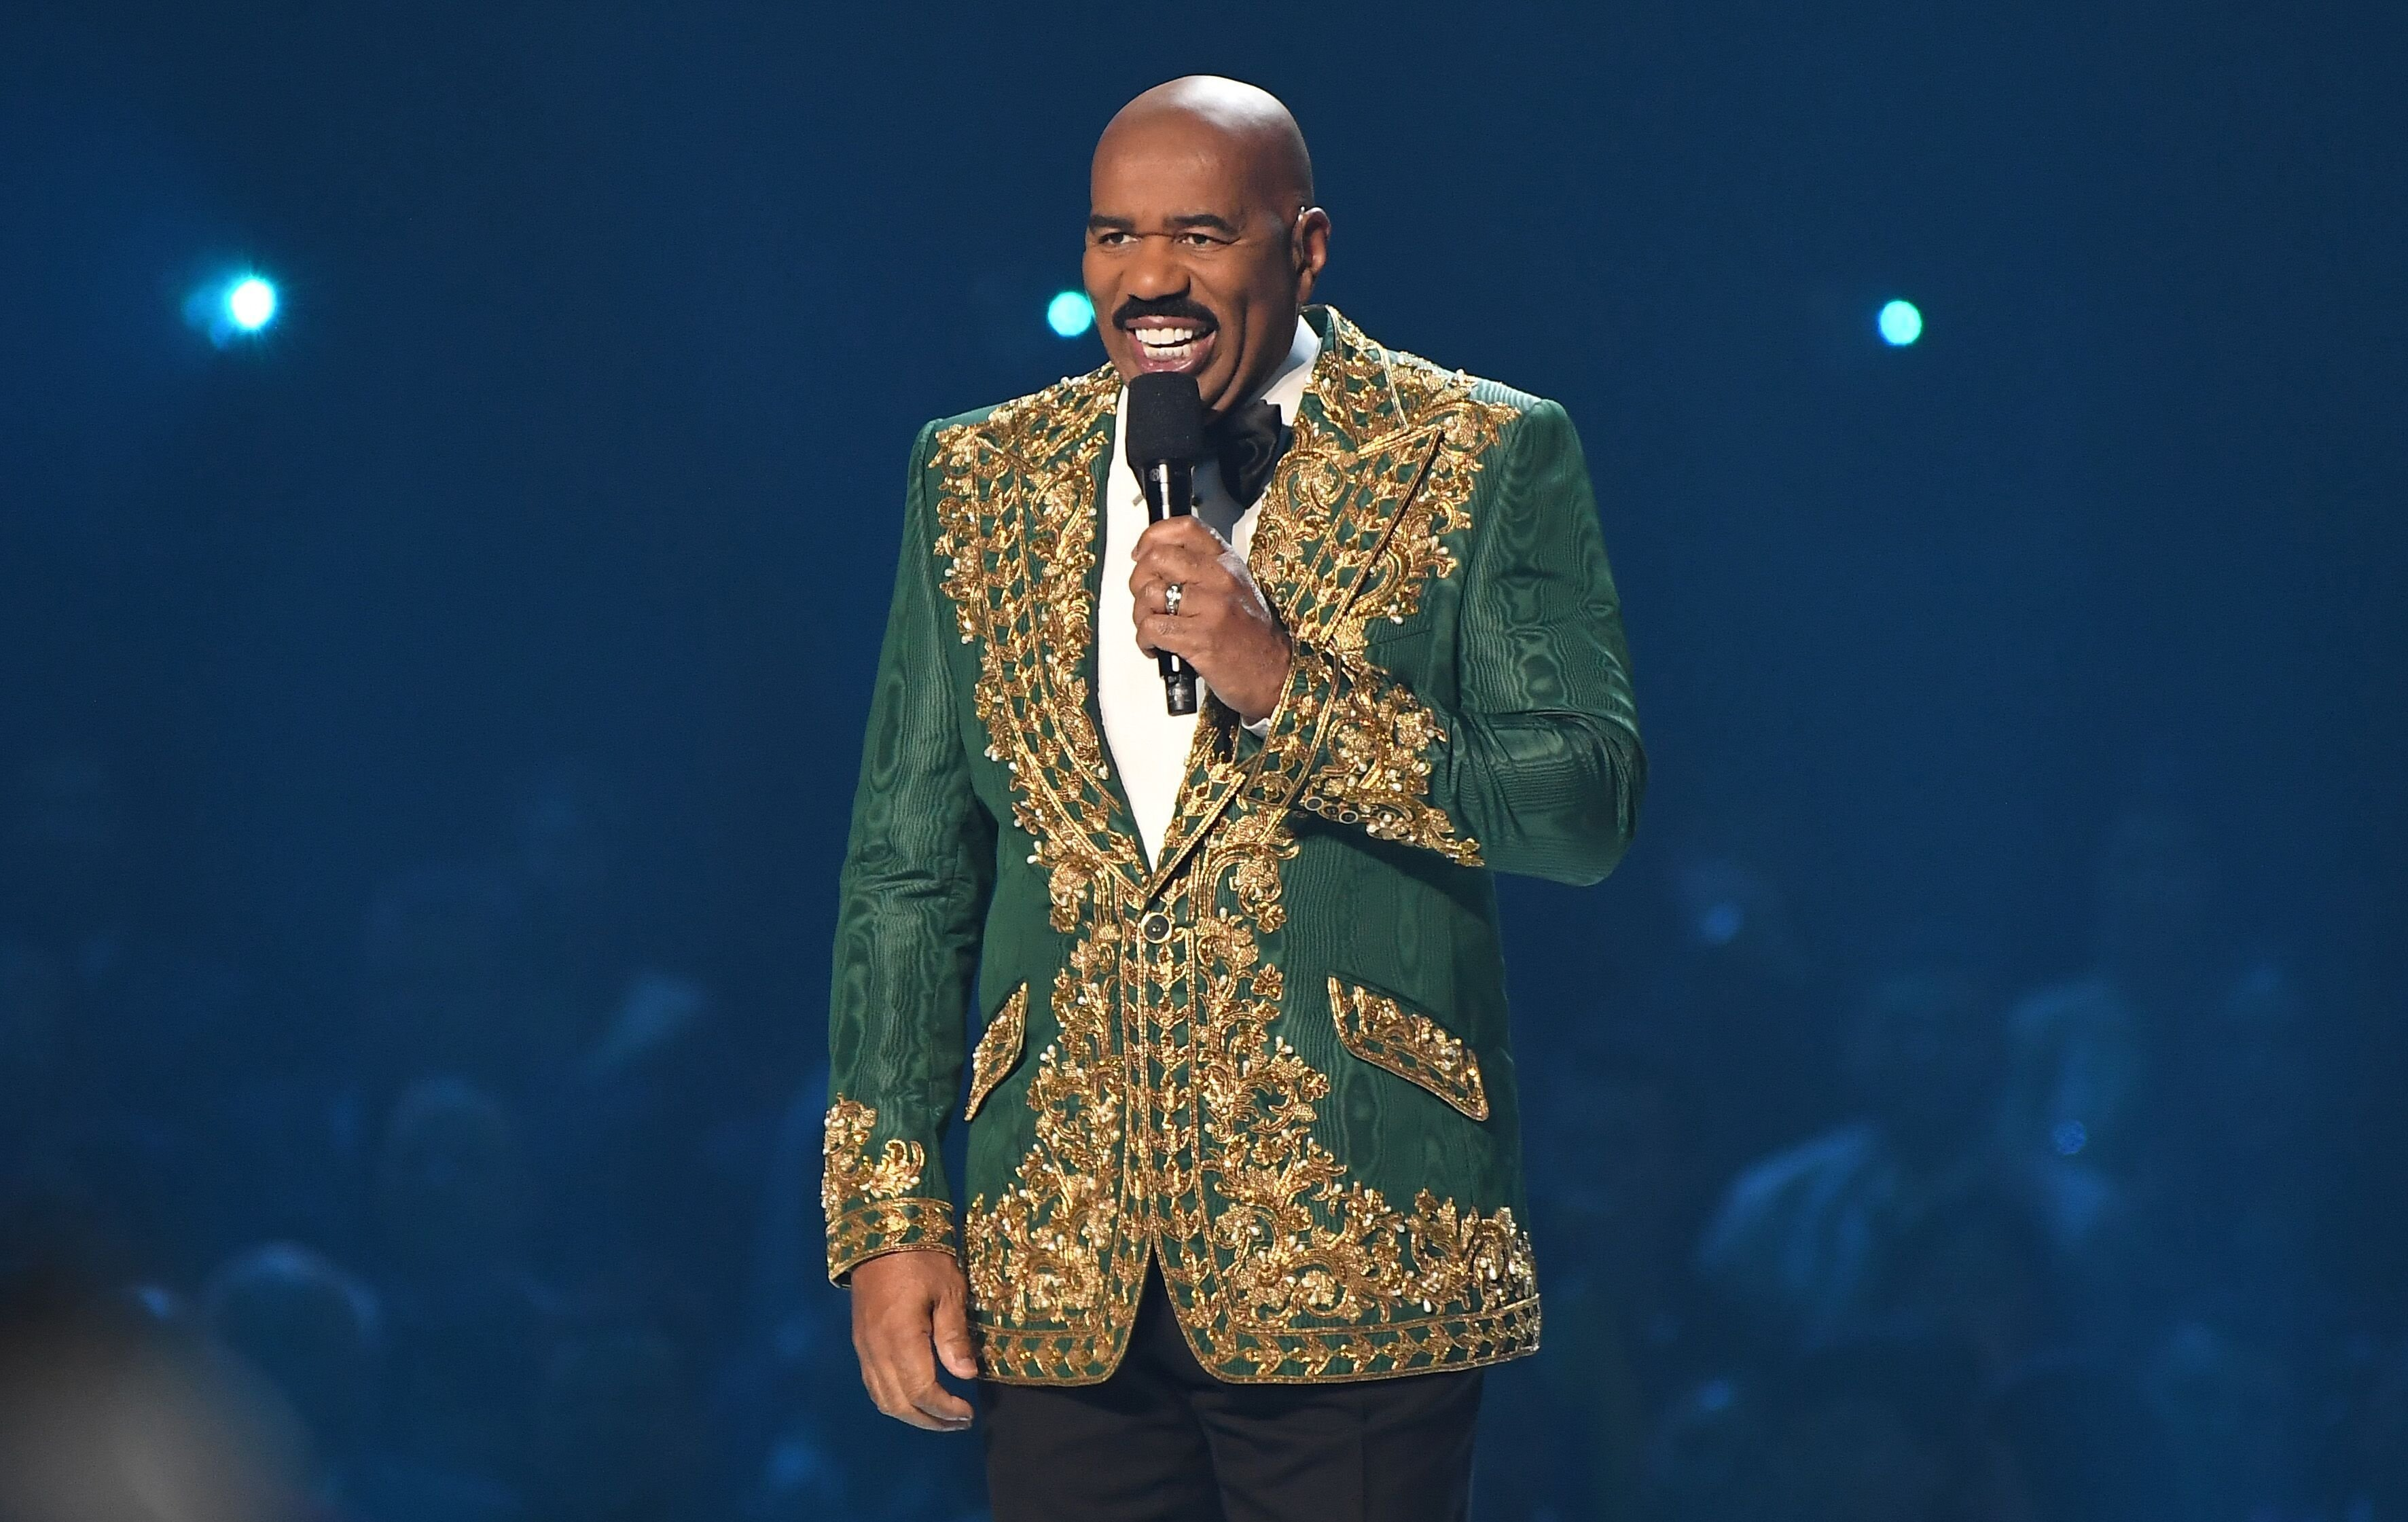 Steve Harvey hosting the 2019 Miss Universe Pageant/ Source: Getty Images